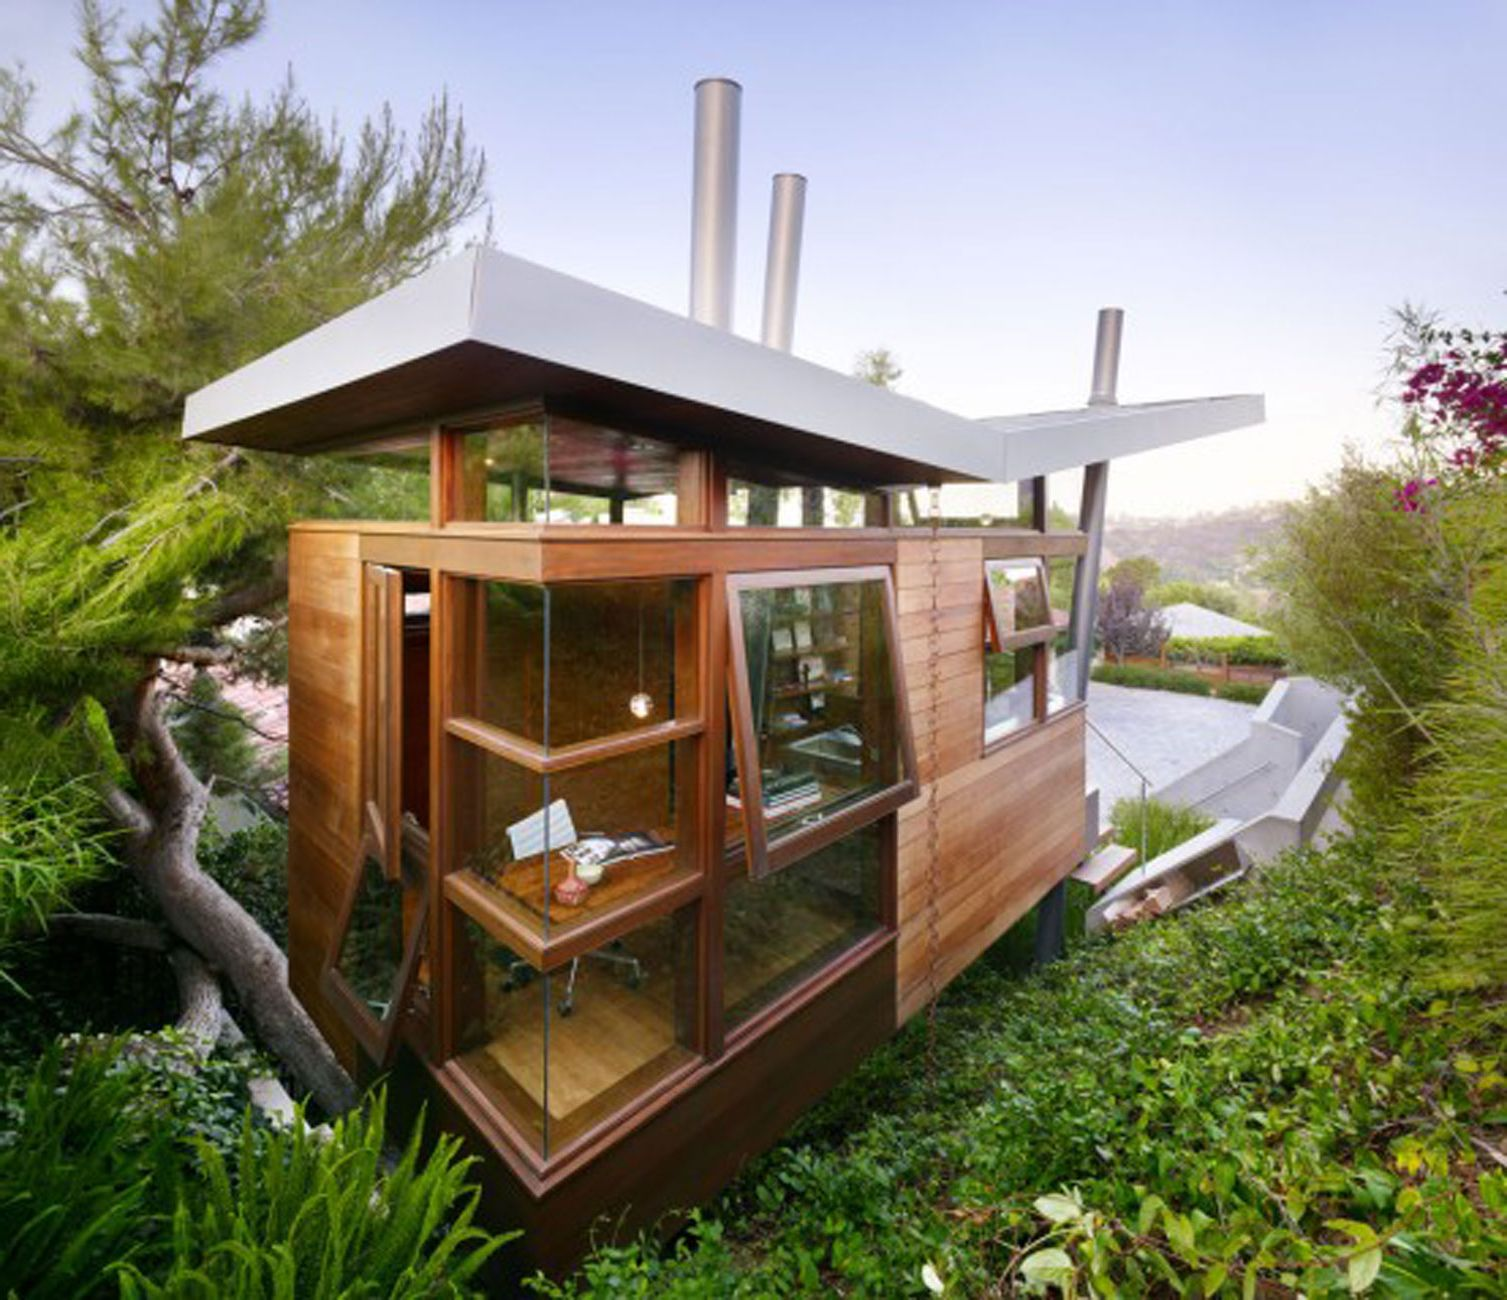 unique-modern-architecture-of-asian-style-house-using-wood-materials-combined-with-glass-walls